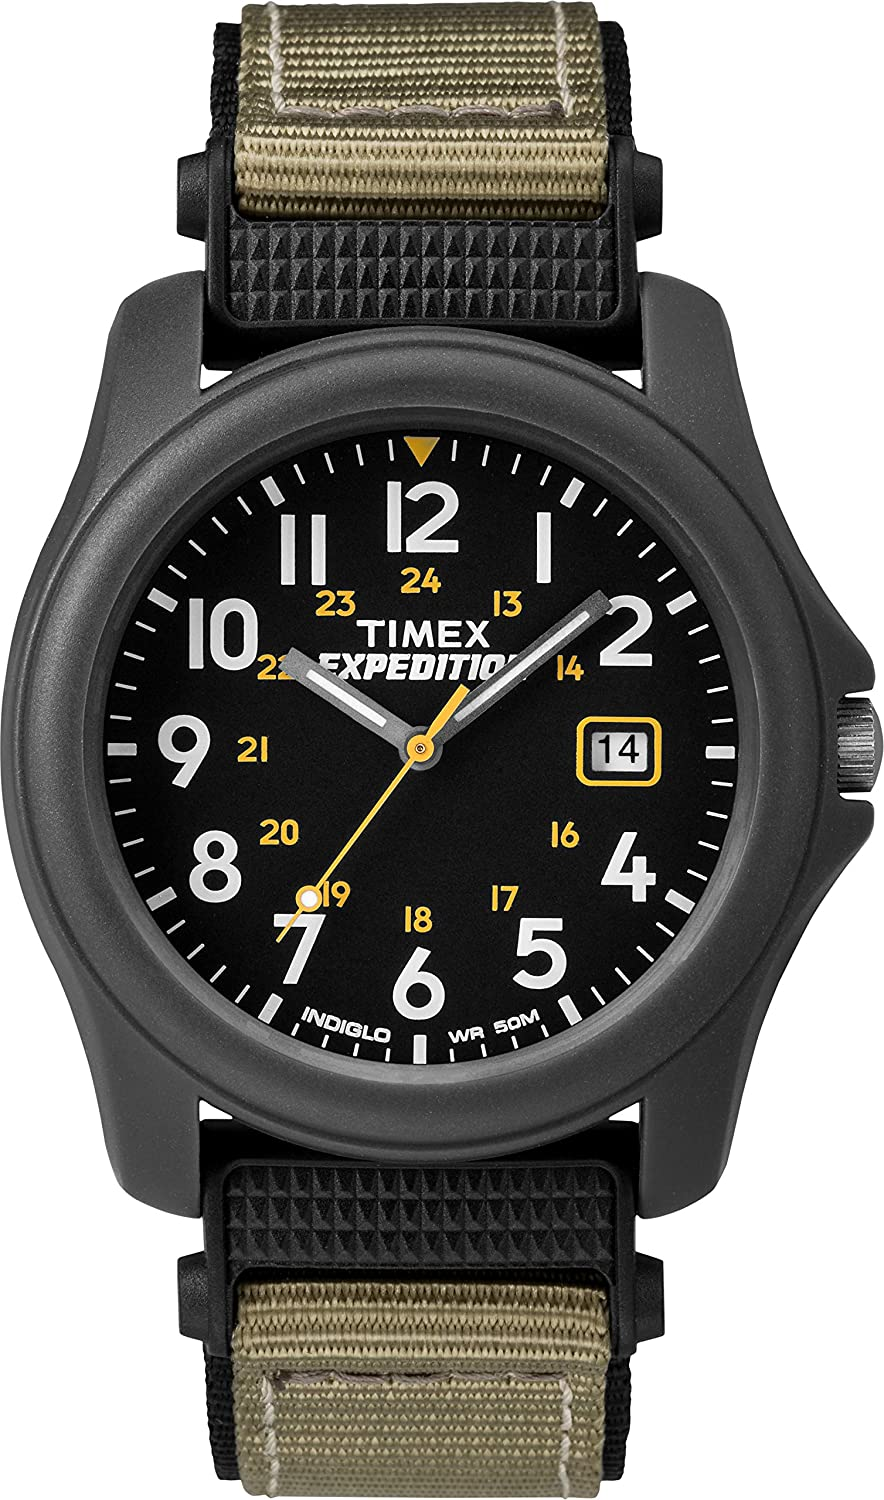 Timex expedition acadia mens watch